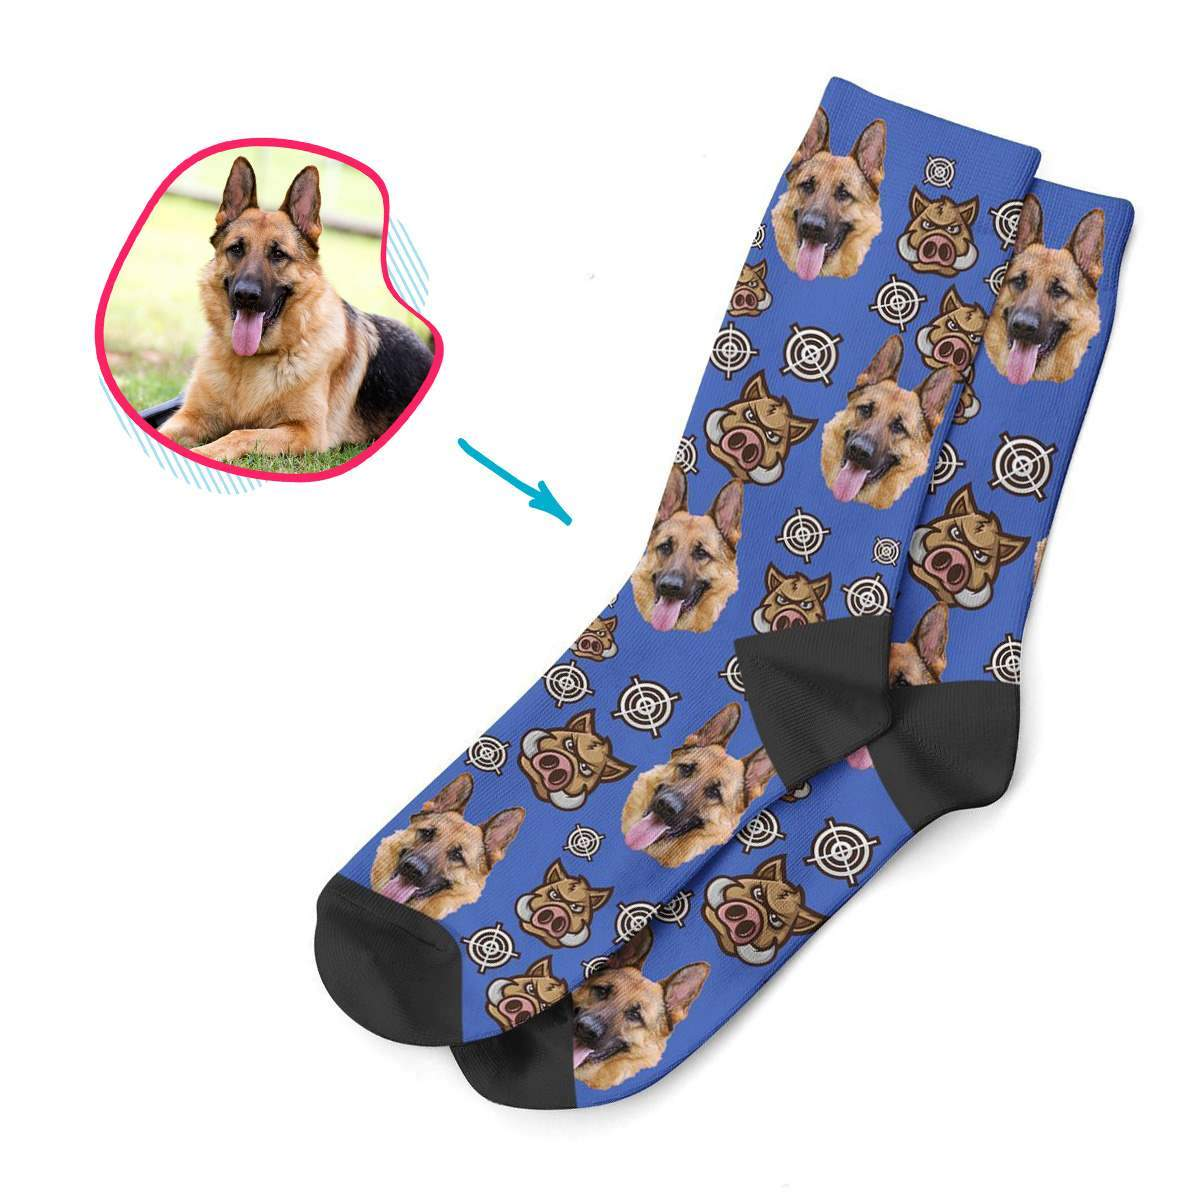 darkblue Boar Hunter socks personalized with photo of face printed on them